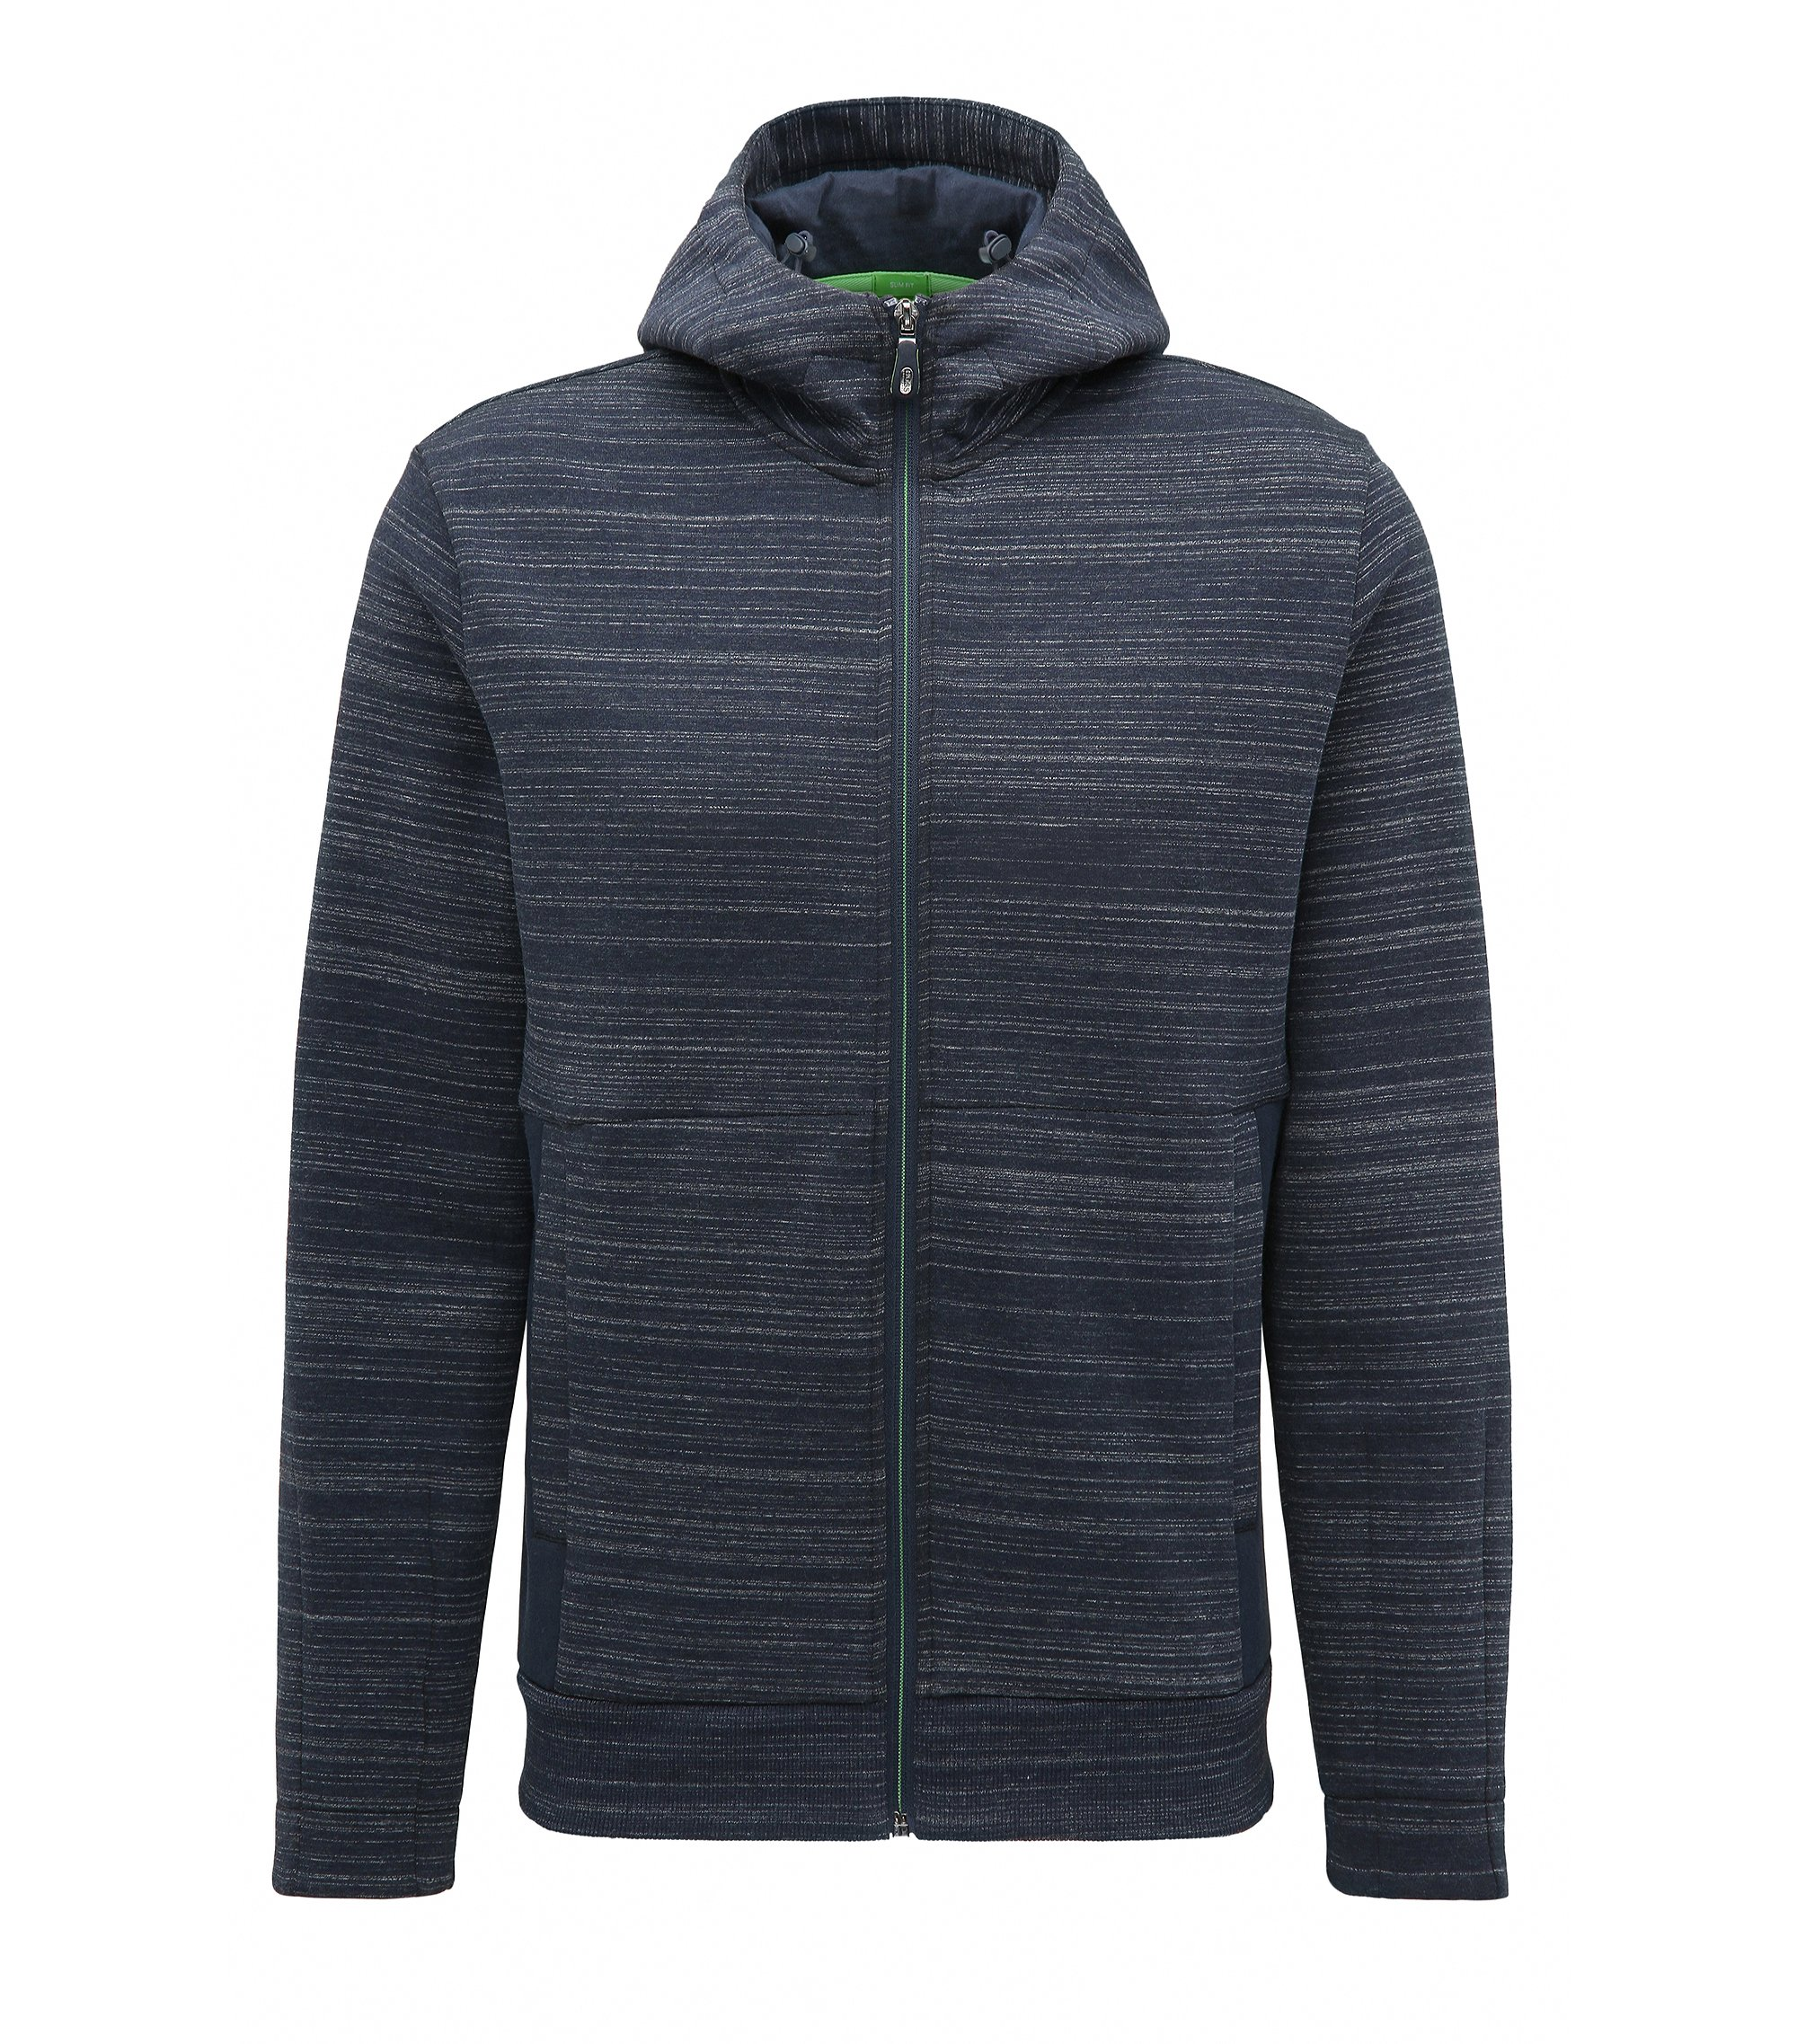 'Sverre' | Slim Fit, Cotton Blend Full-Zip Hooded Sweater, Dark Blue